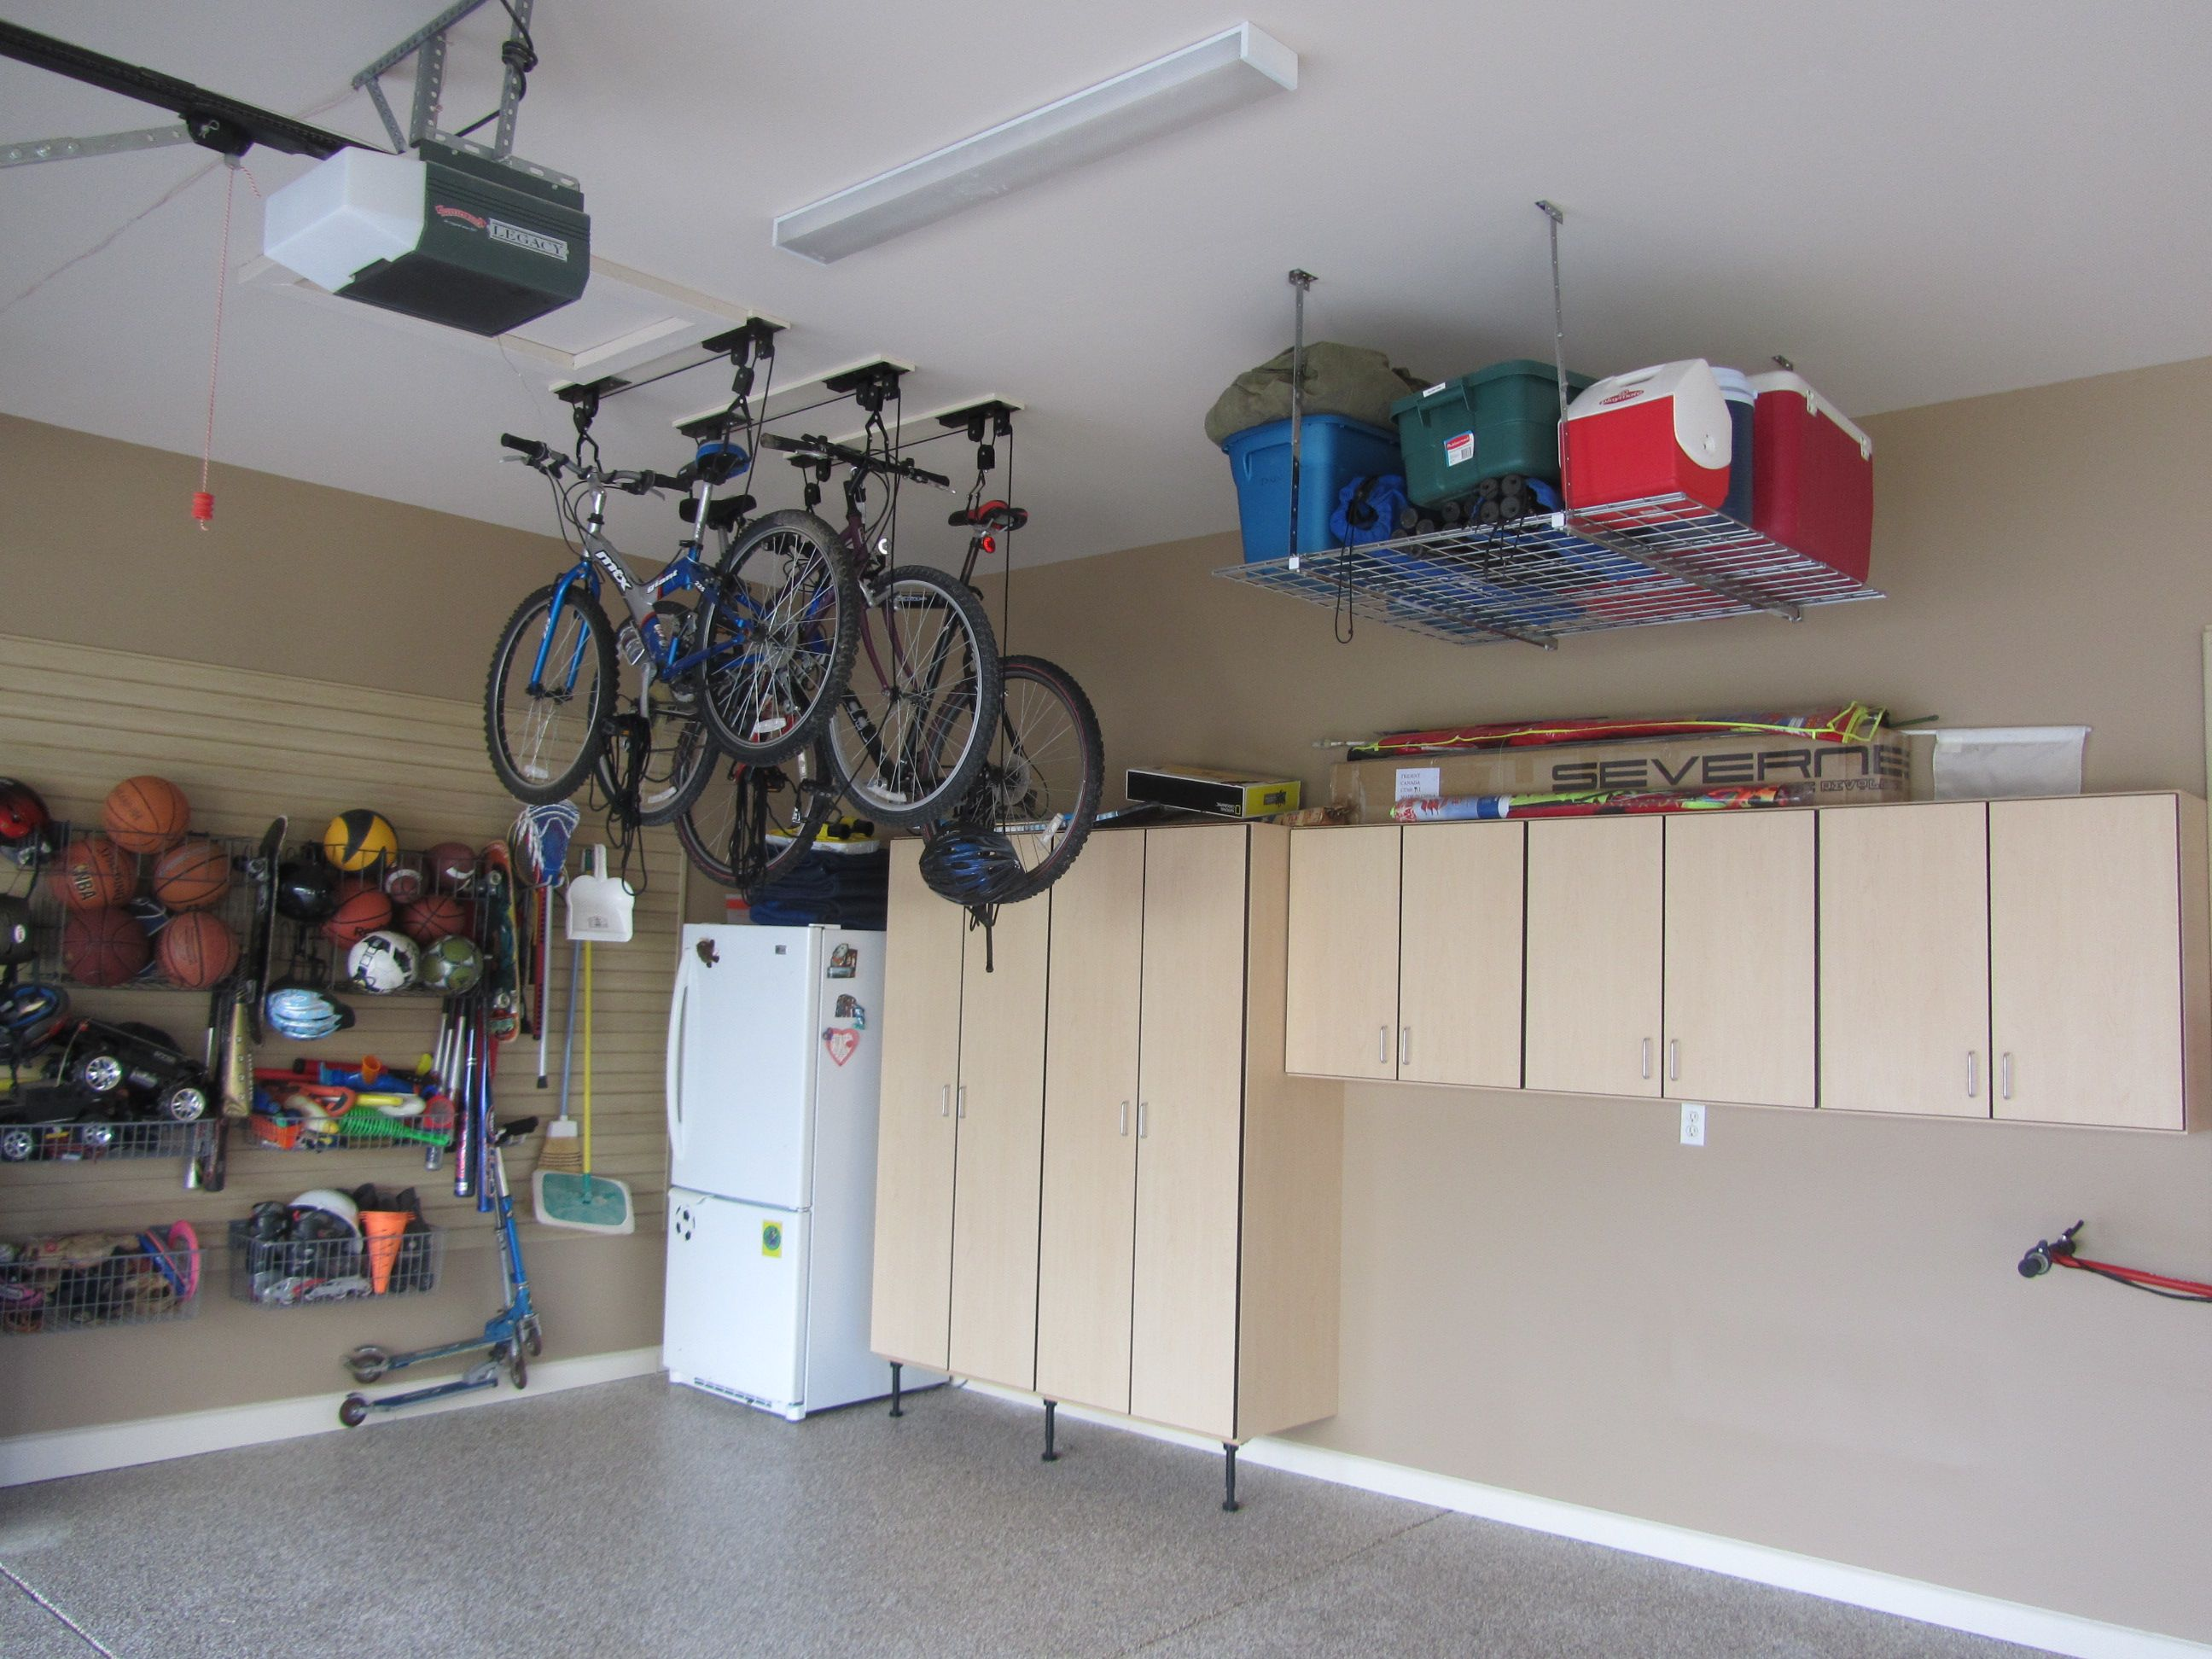 home garage free shipping x monsterrax product garden ceiling mounted overhead storage today overstock rack